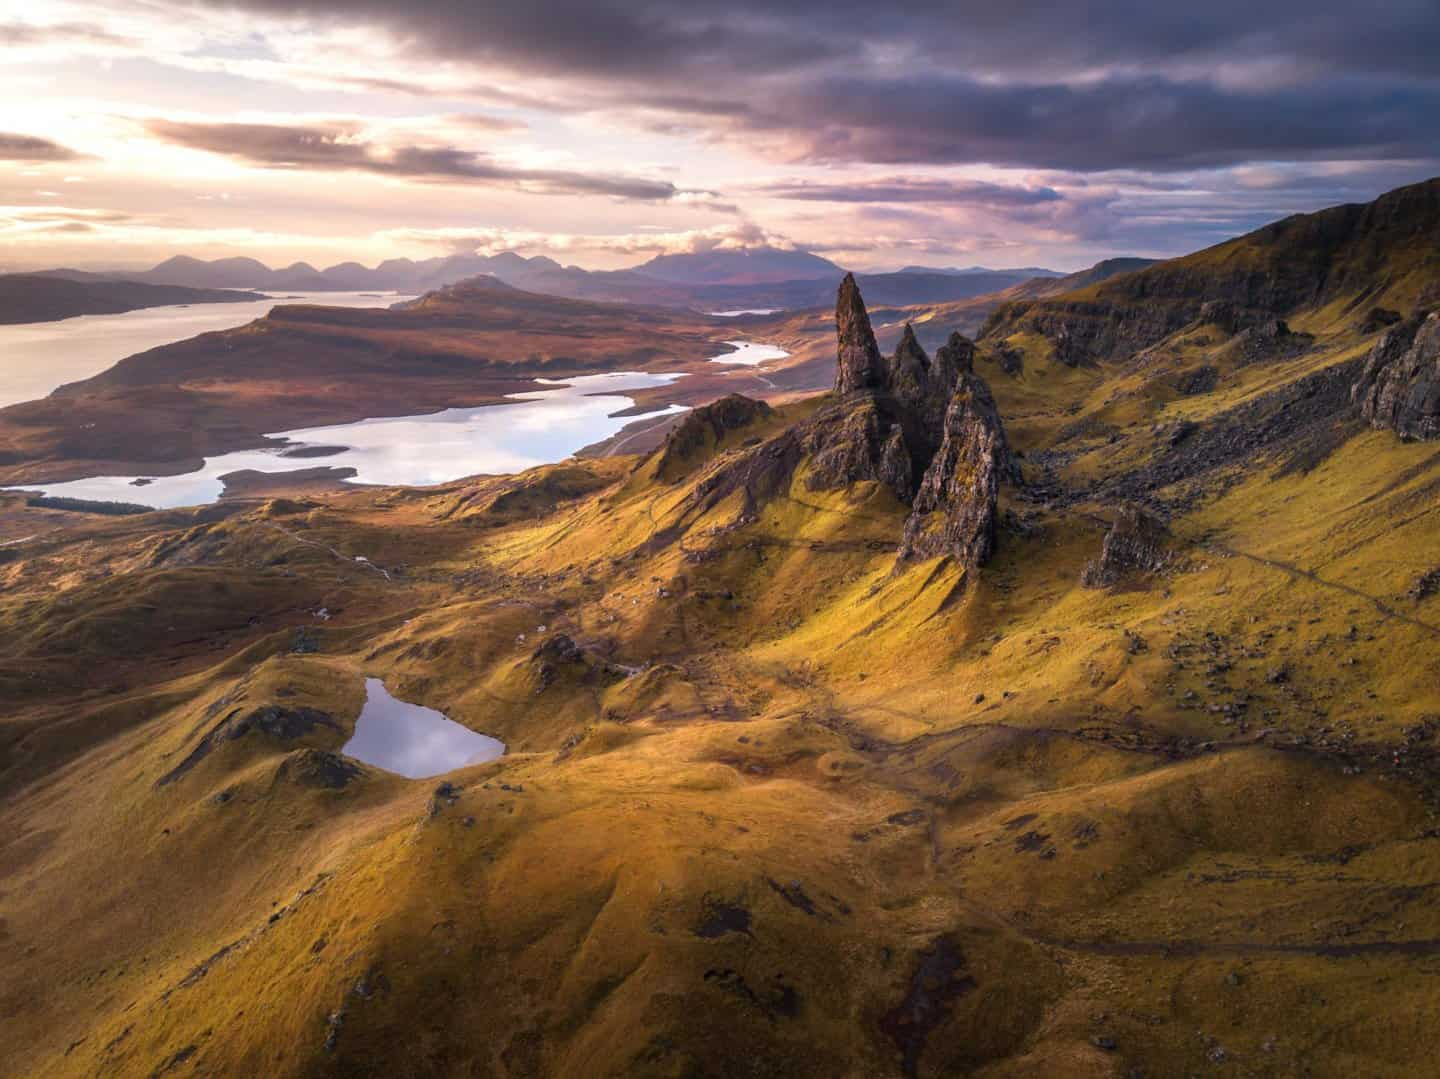 An absolute must during 10 days in Scotland: A stunning sunrise at the Old Man of Storr on Isle of Skye.